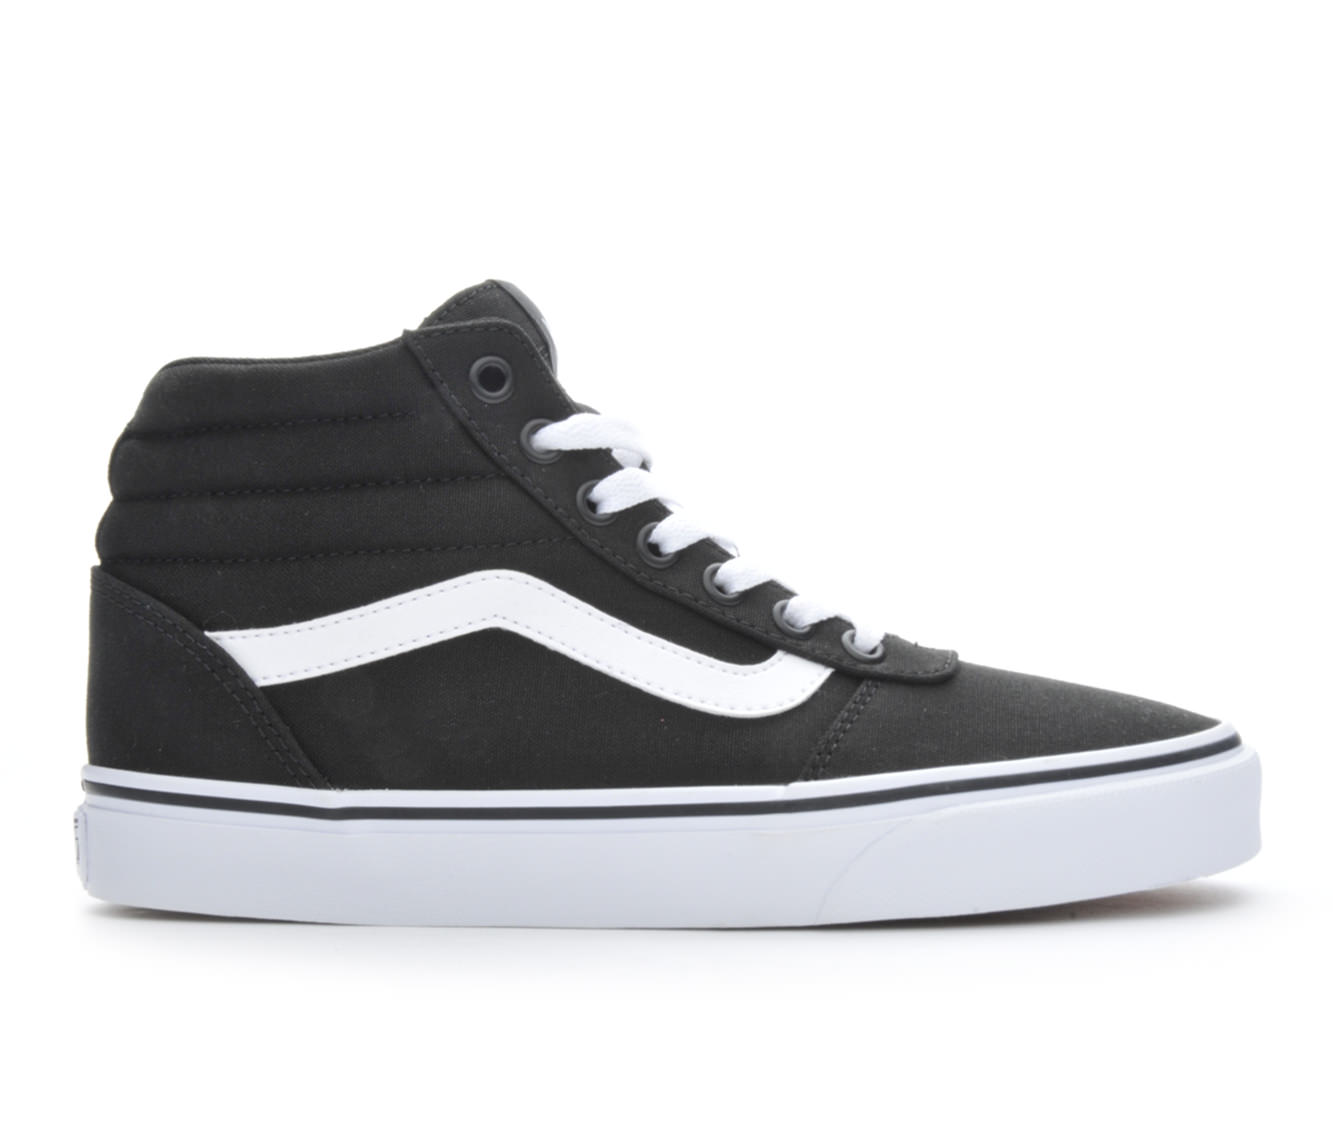 Vans Ward Hi Women's Athletic Shoe (Black)